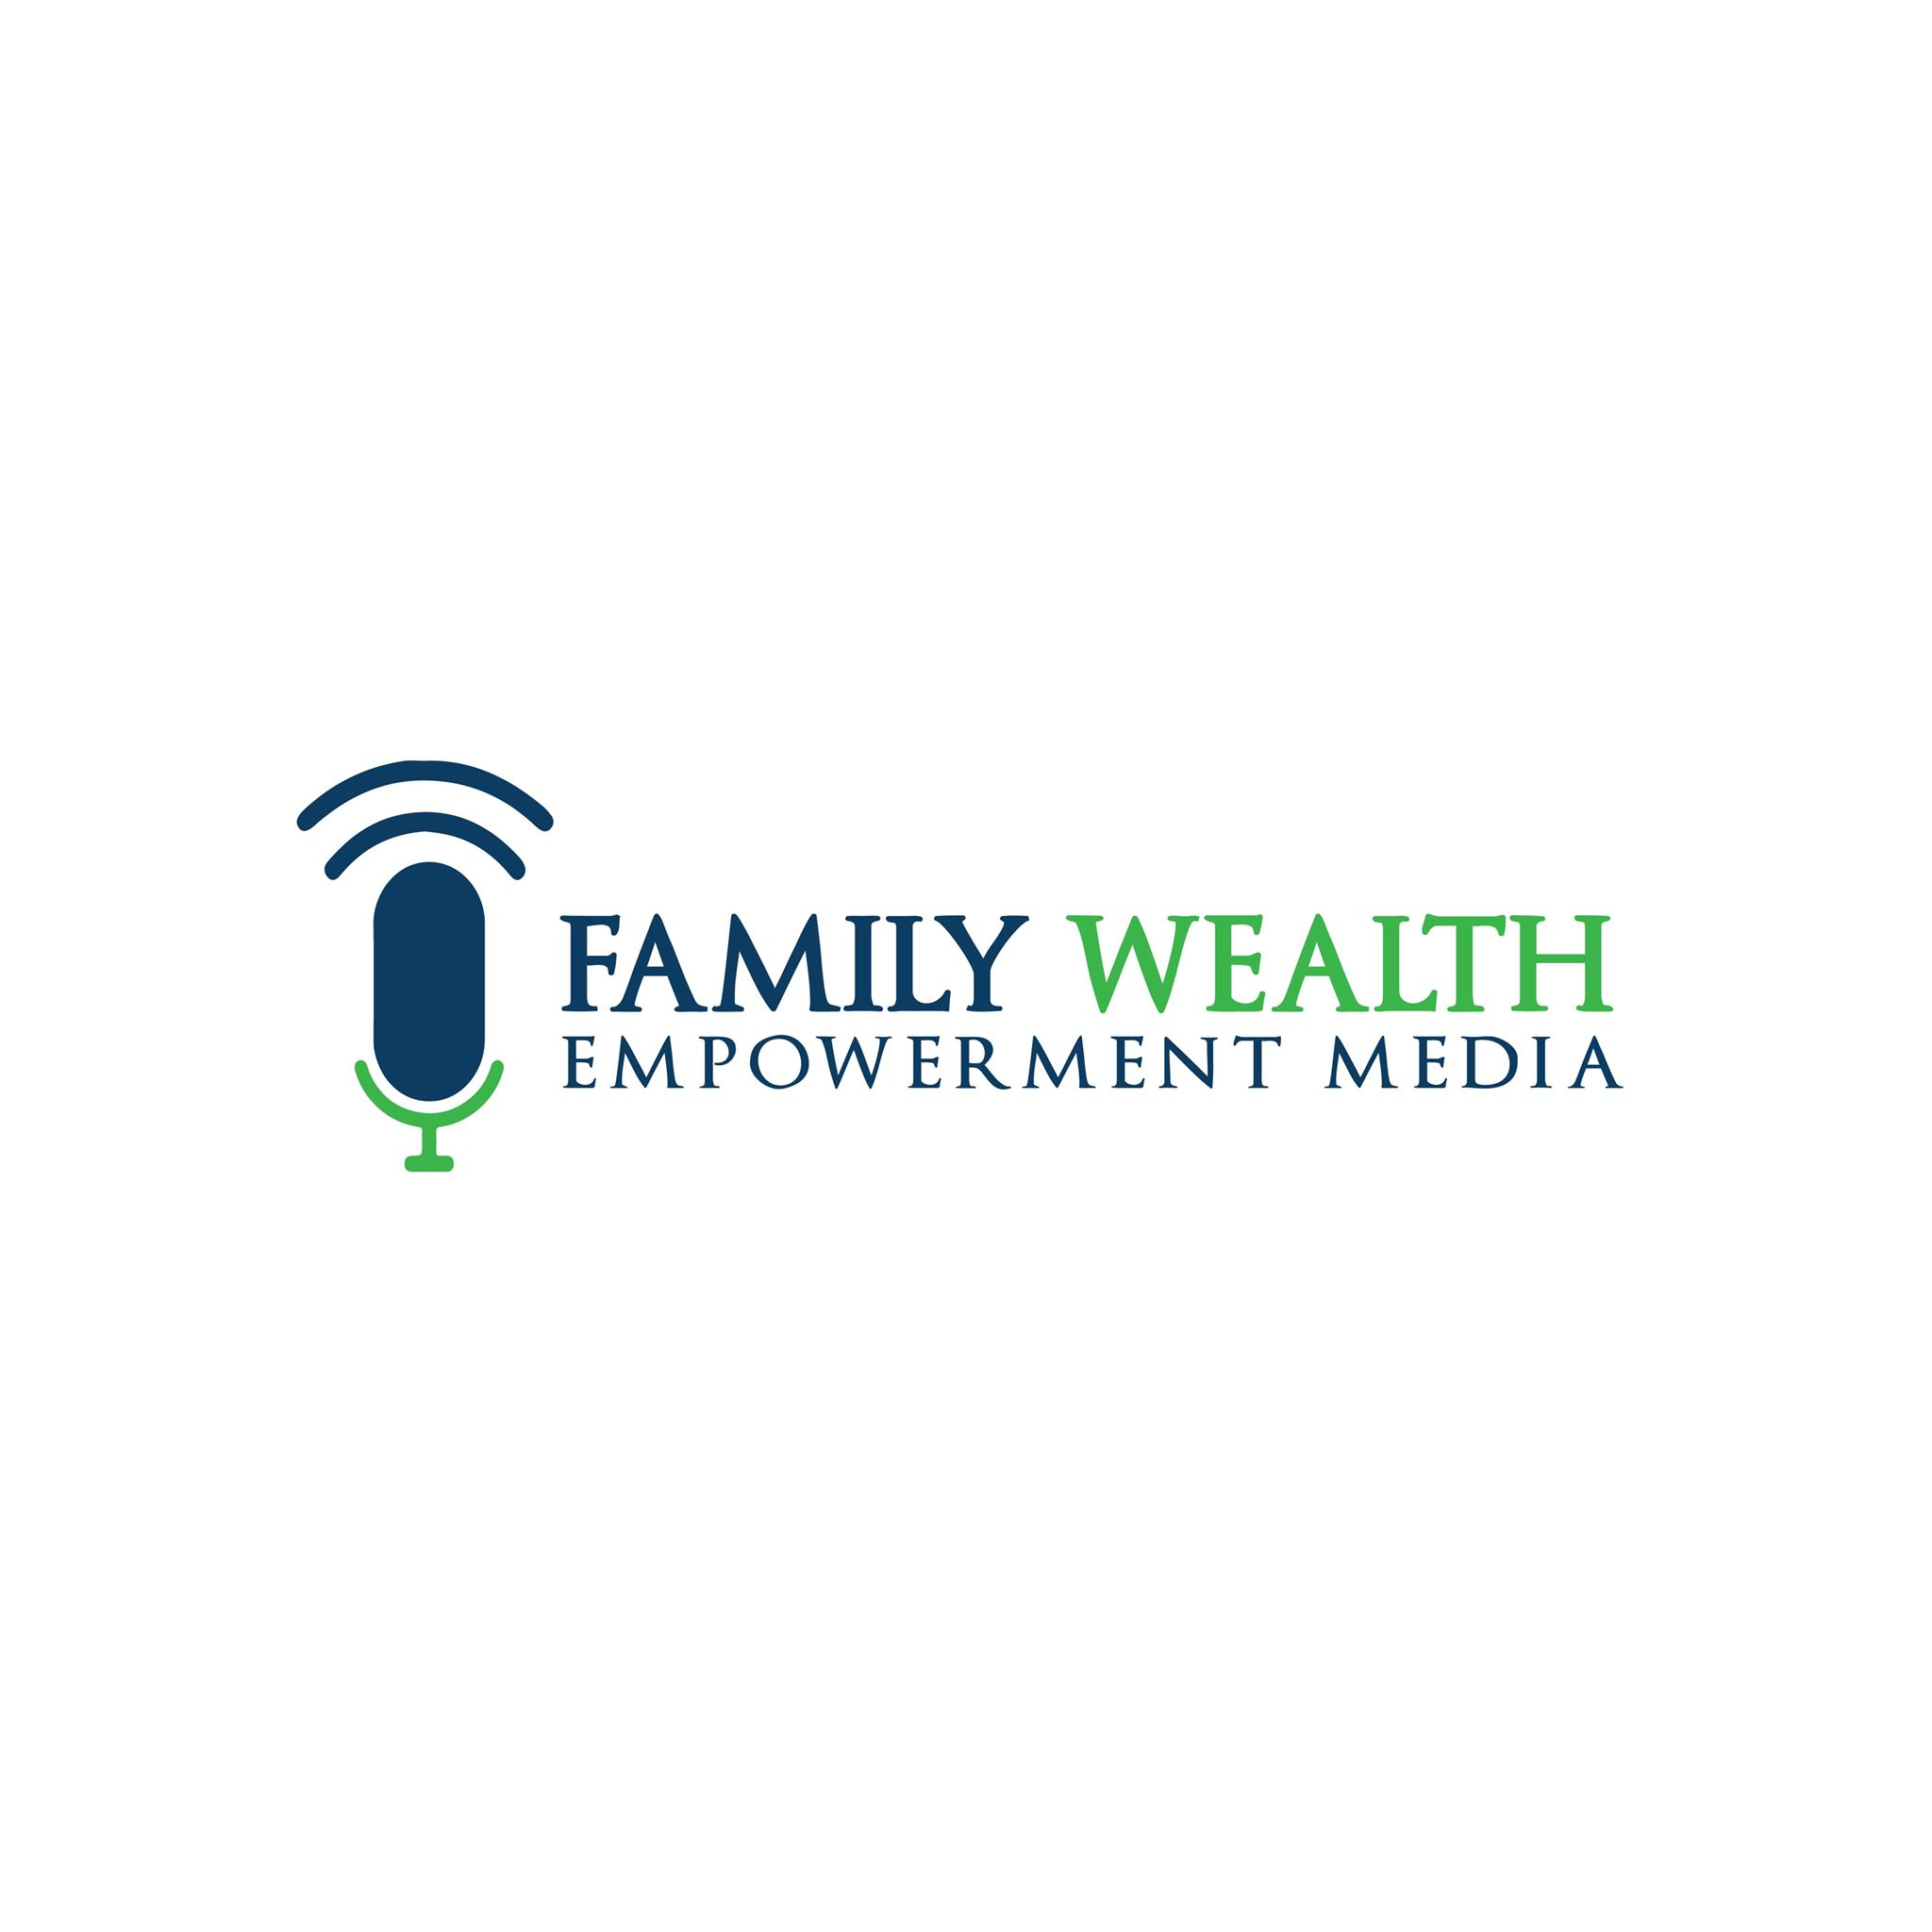 Family Wealth Empowerment Media